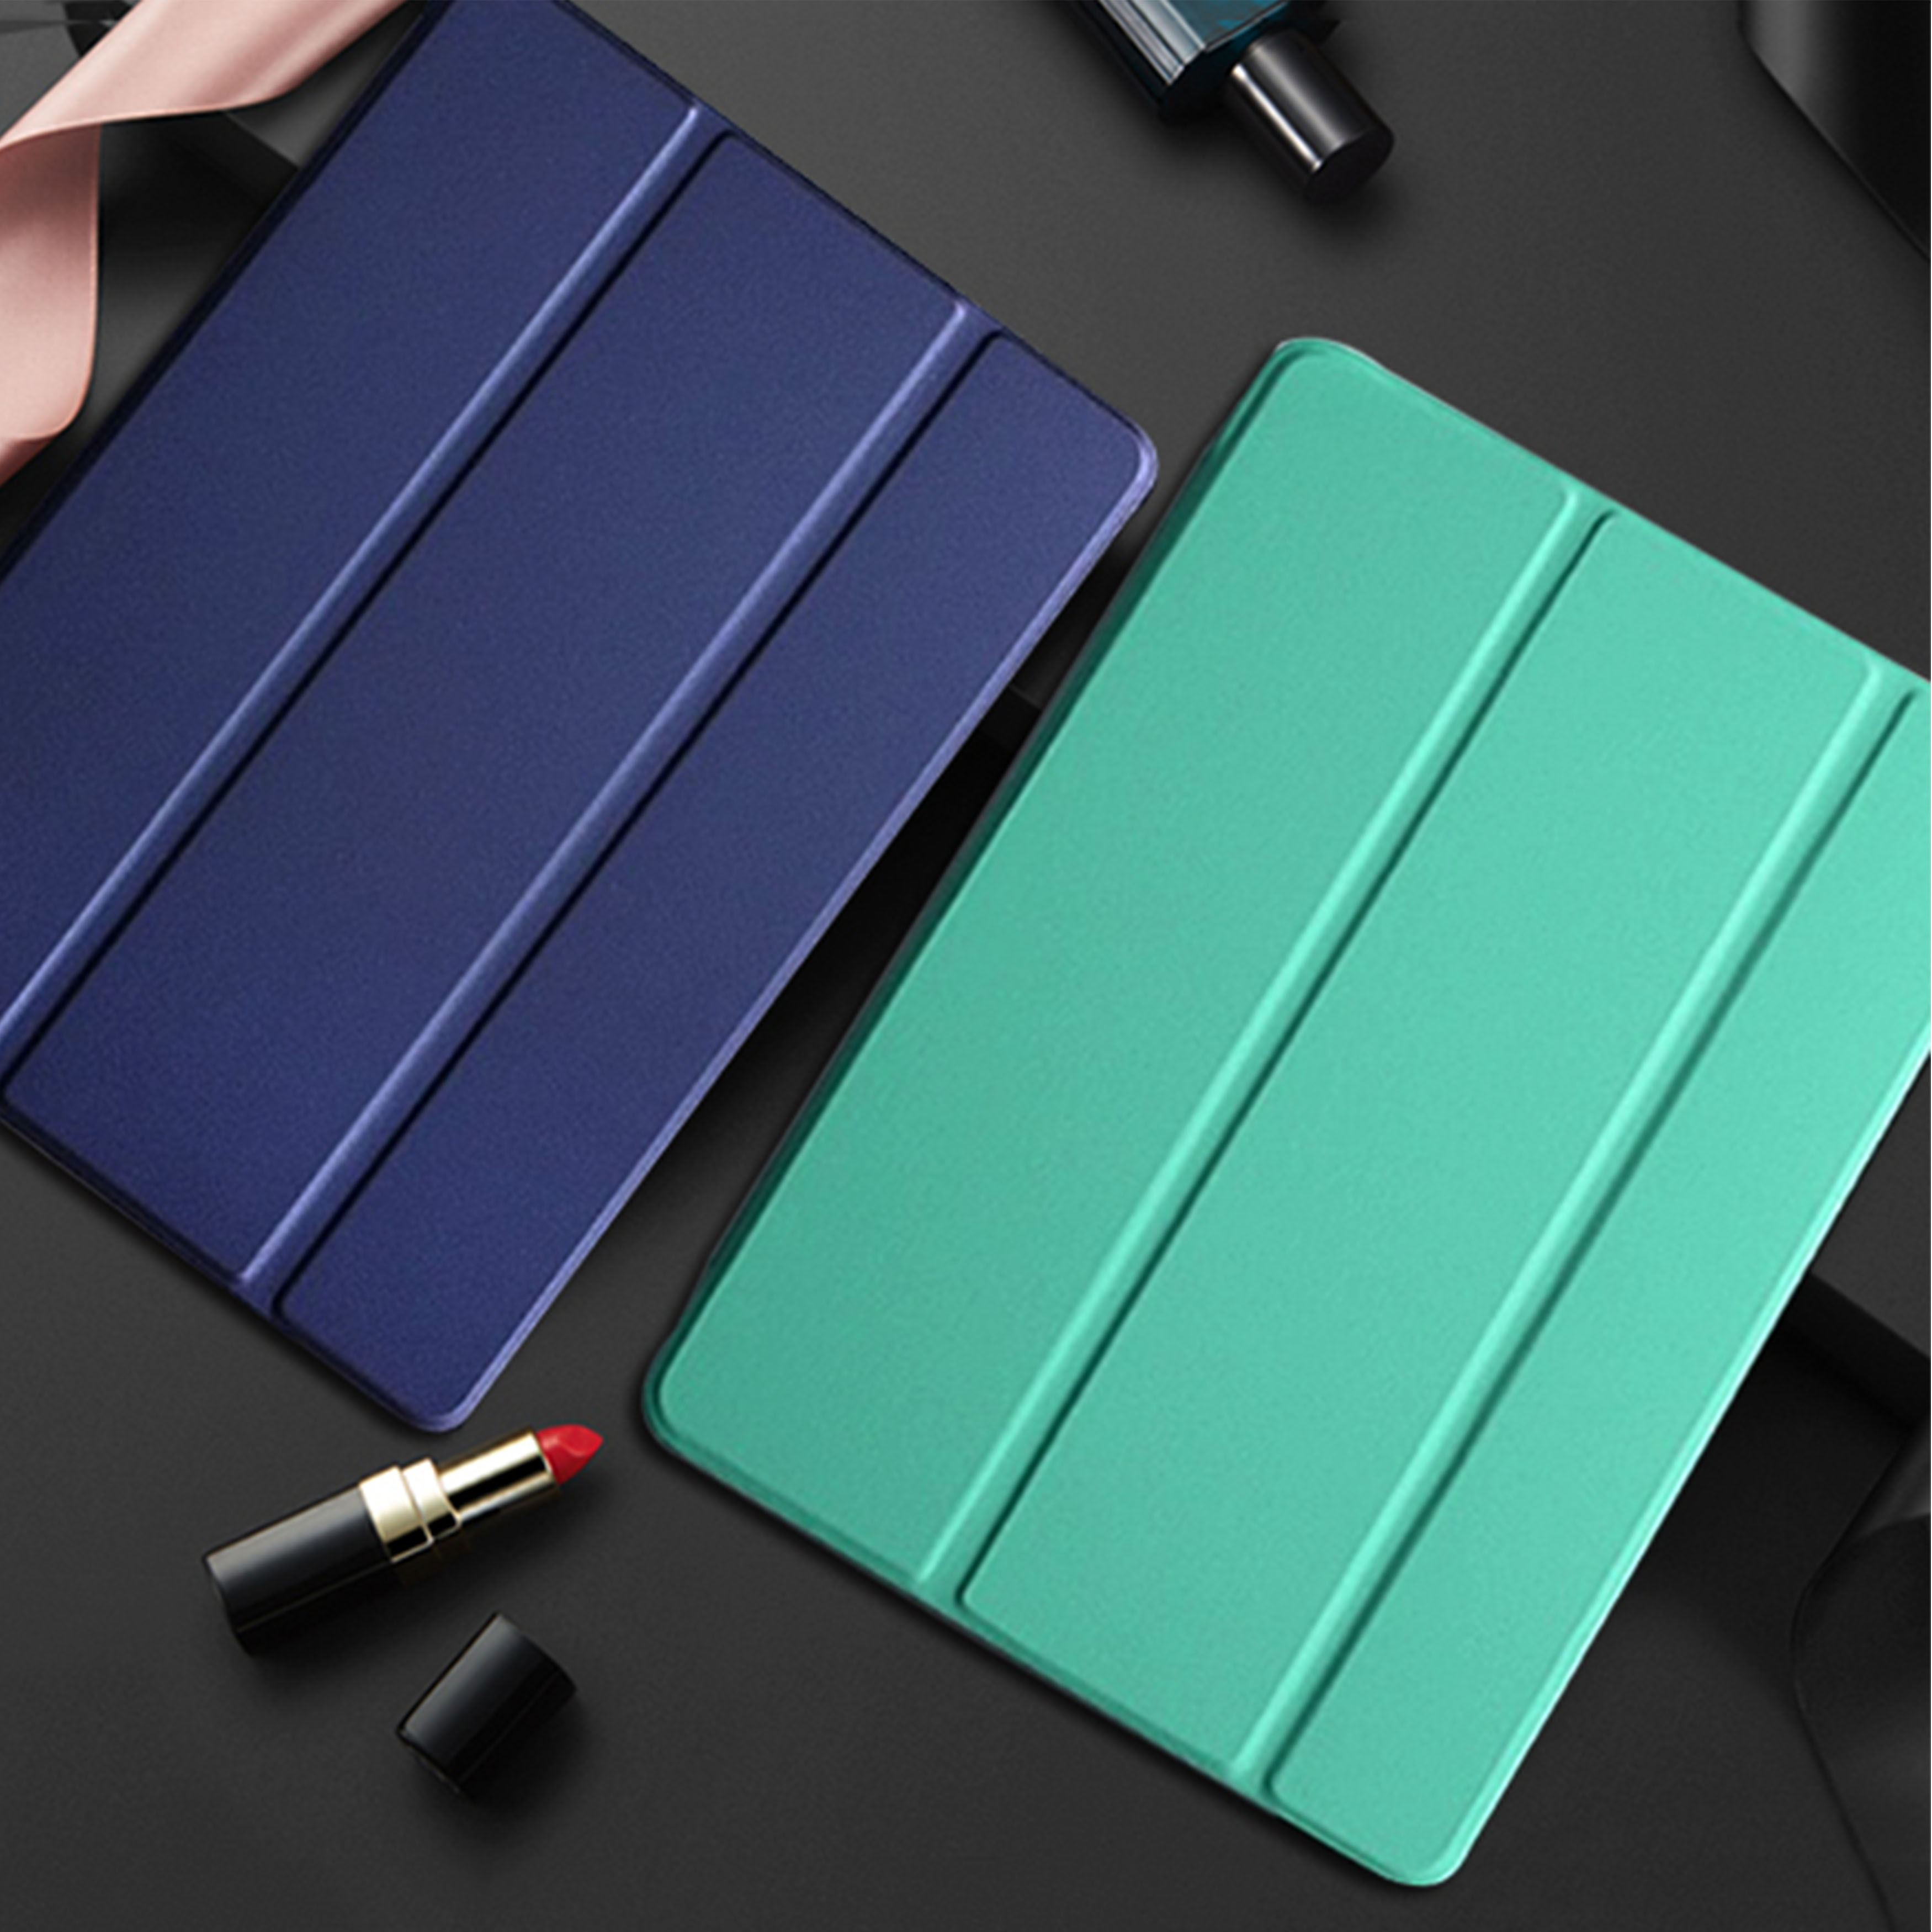 Case For Samsung Galaxy Tab S2 9.7 SM-T810 T815 Cover PU Leather Smart Protect Shell For Tab S2 9.7 Case SM-T813 T819 Coque